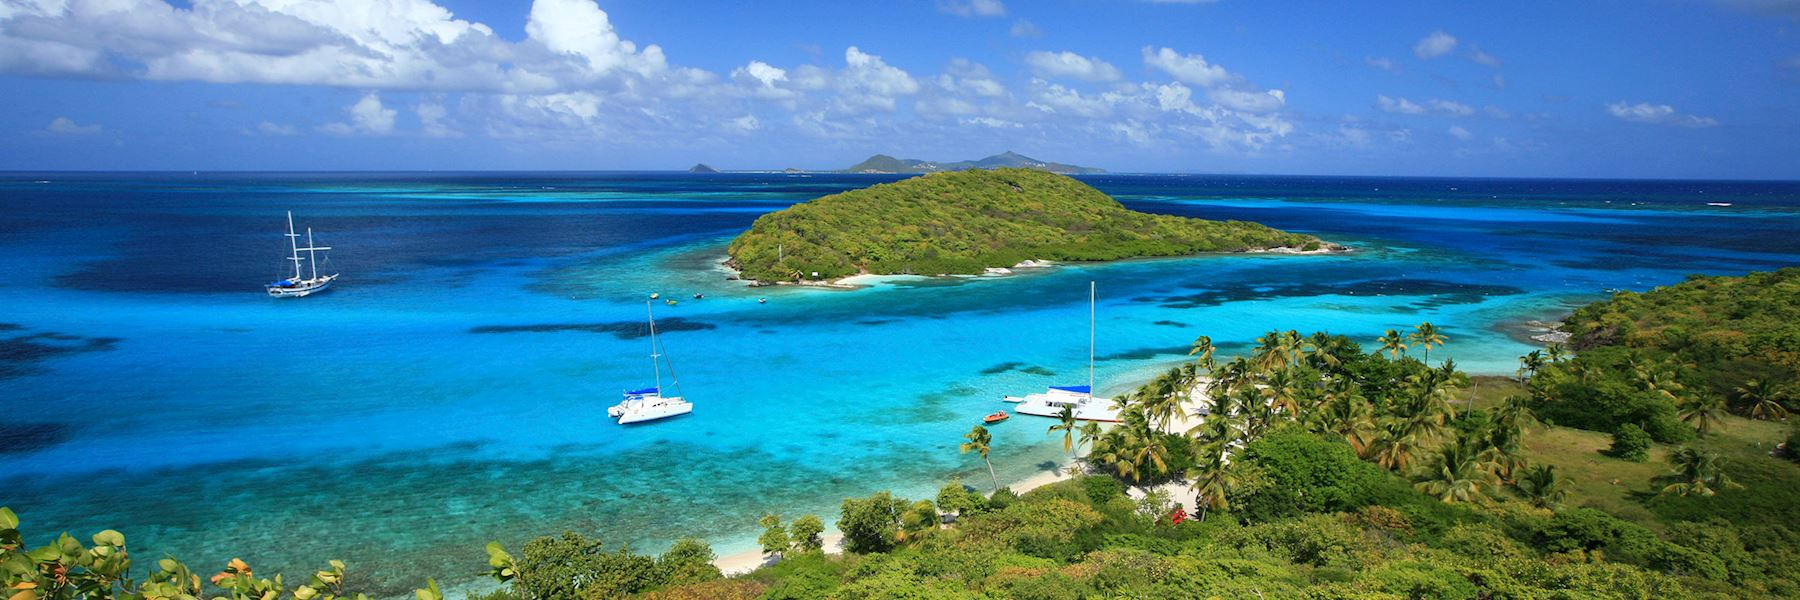 St Vincent and the Grenadines travel advice